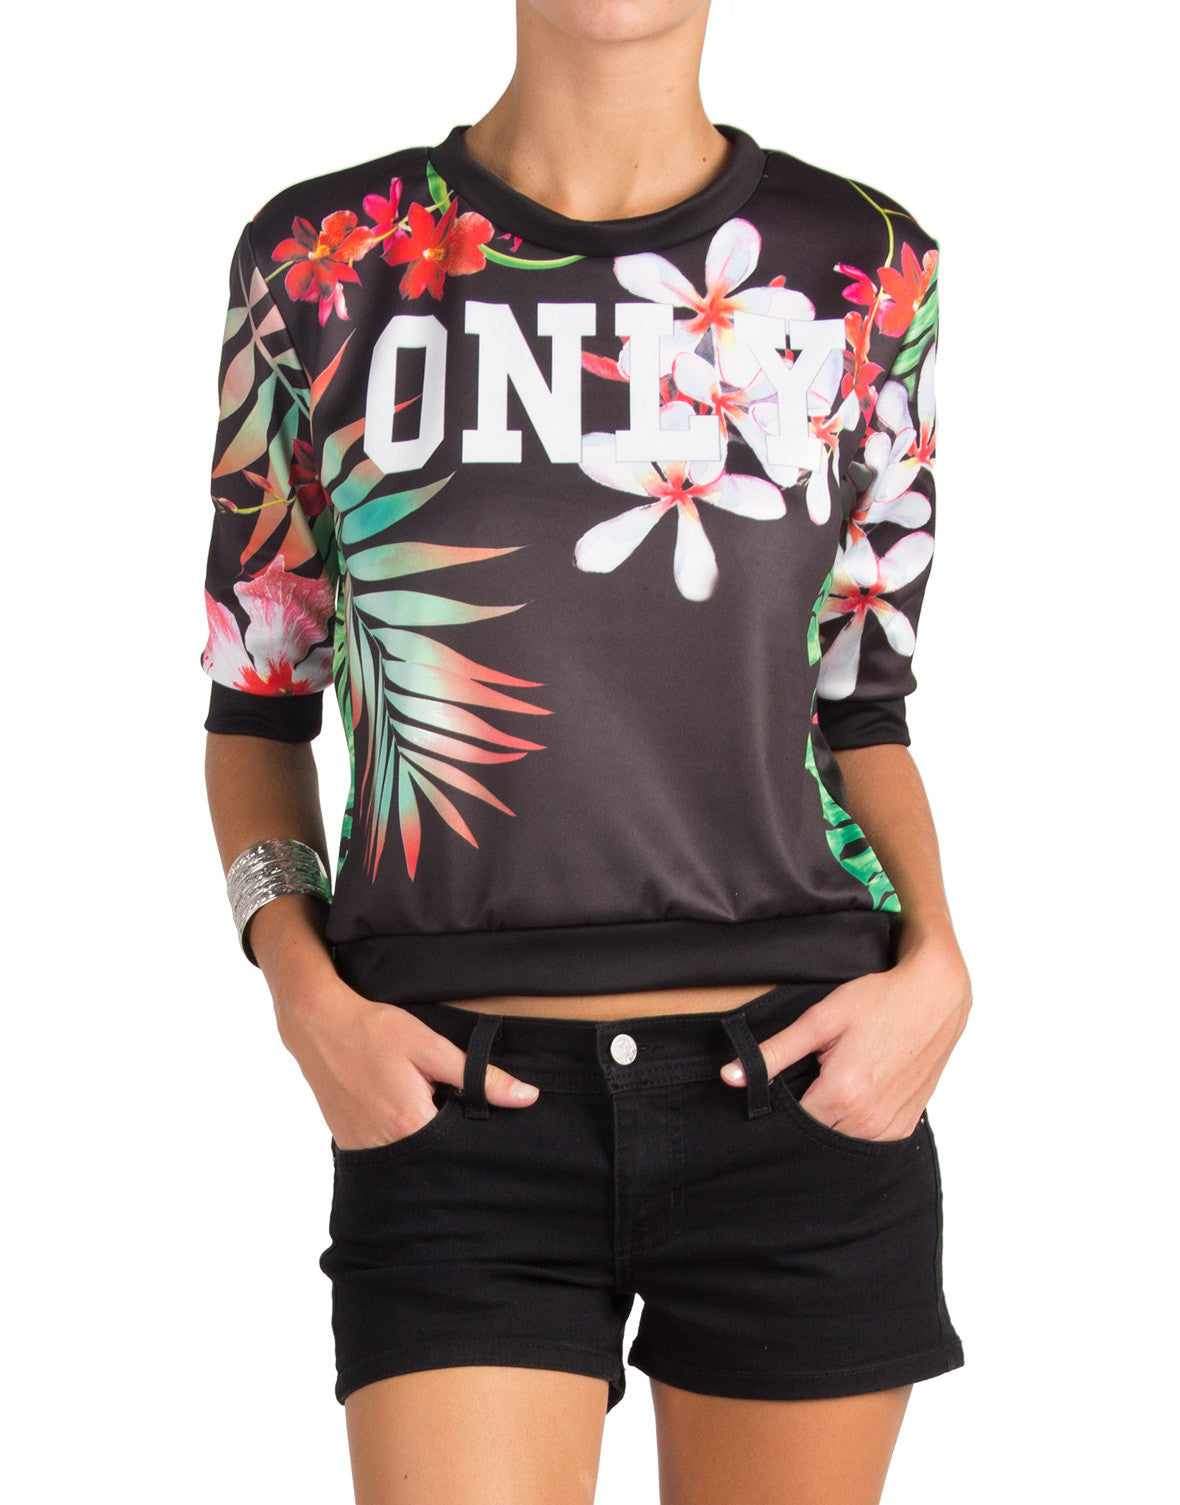 Only In The Tropics Top - Medium - 2020AVE